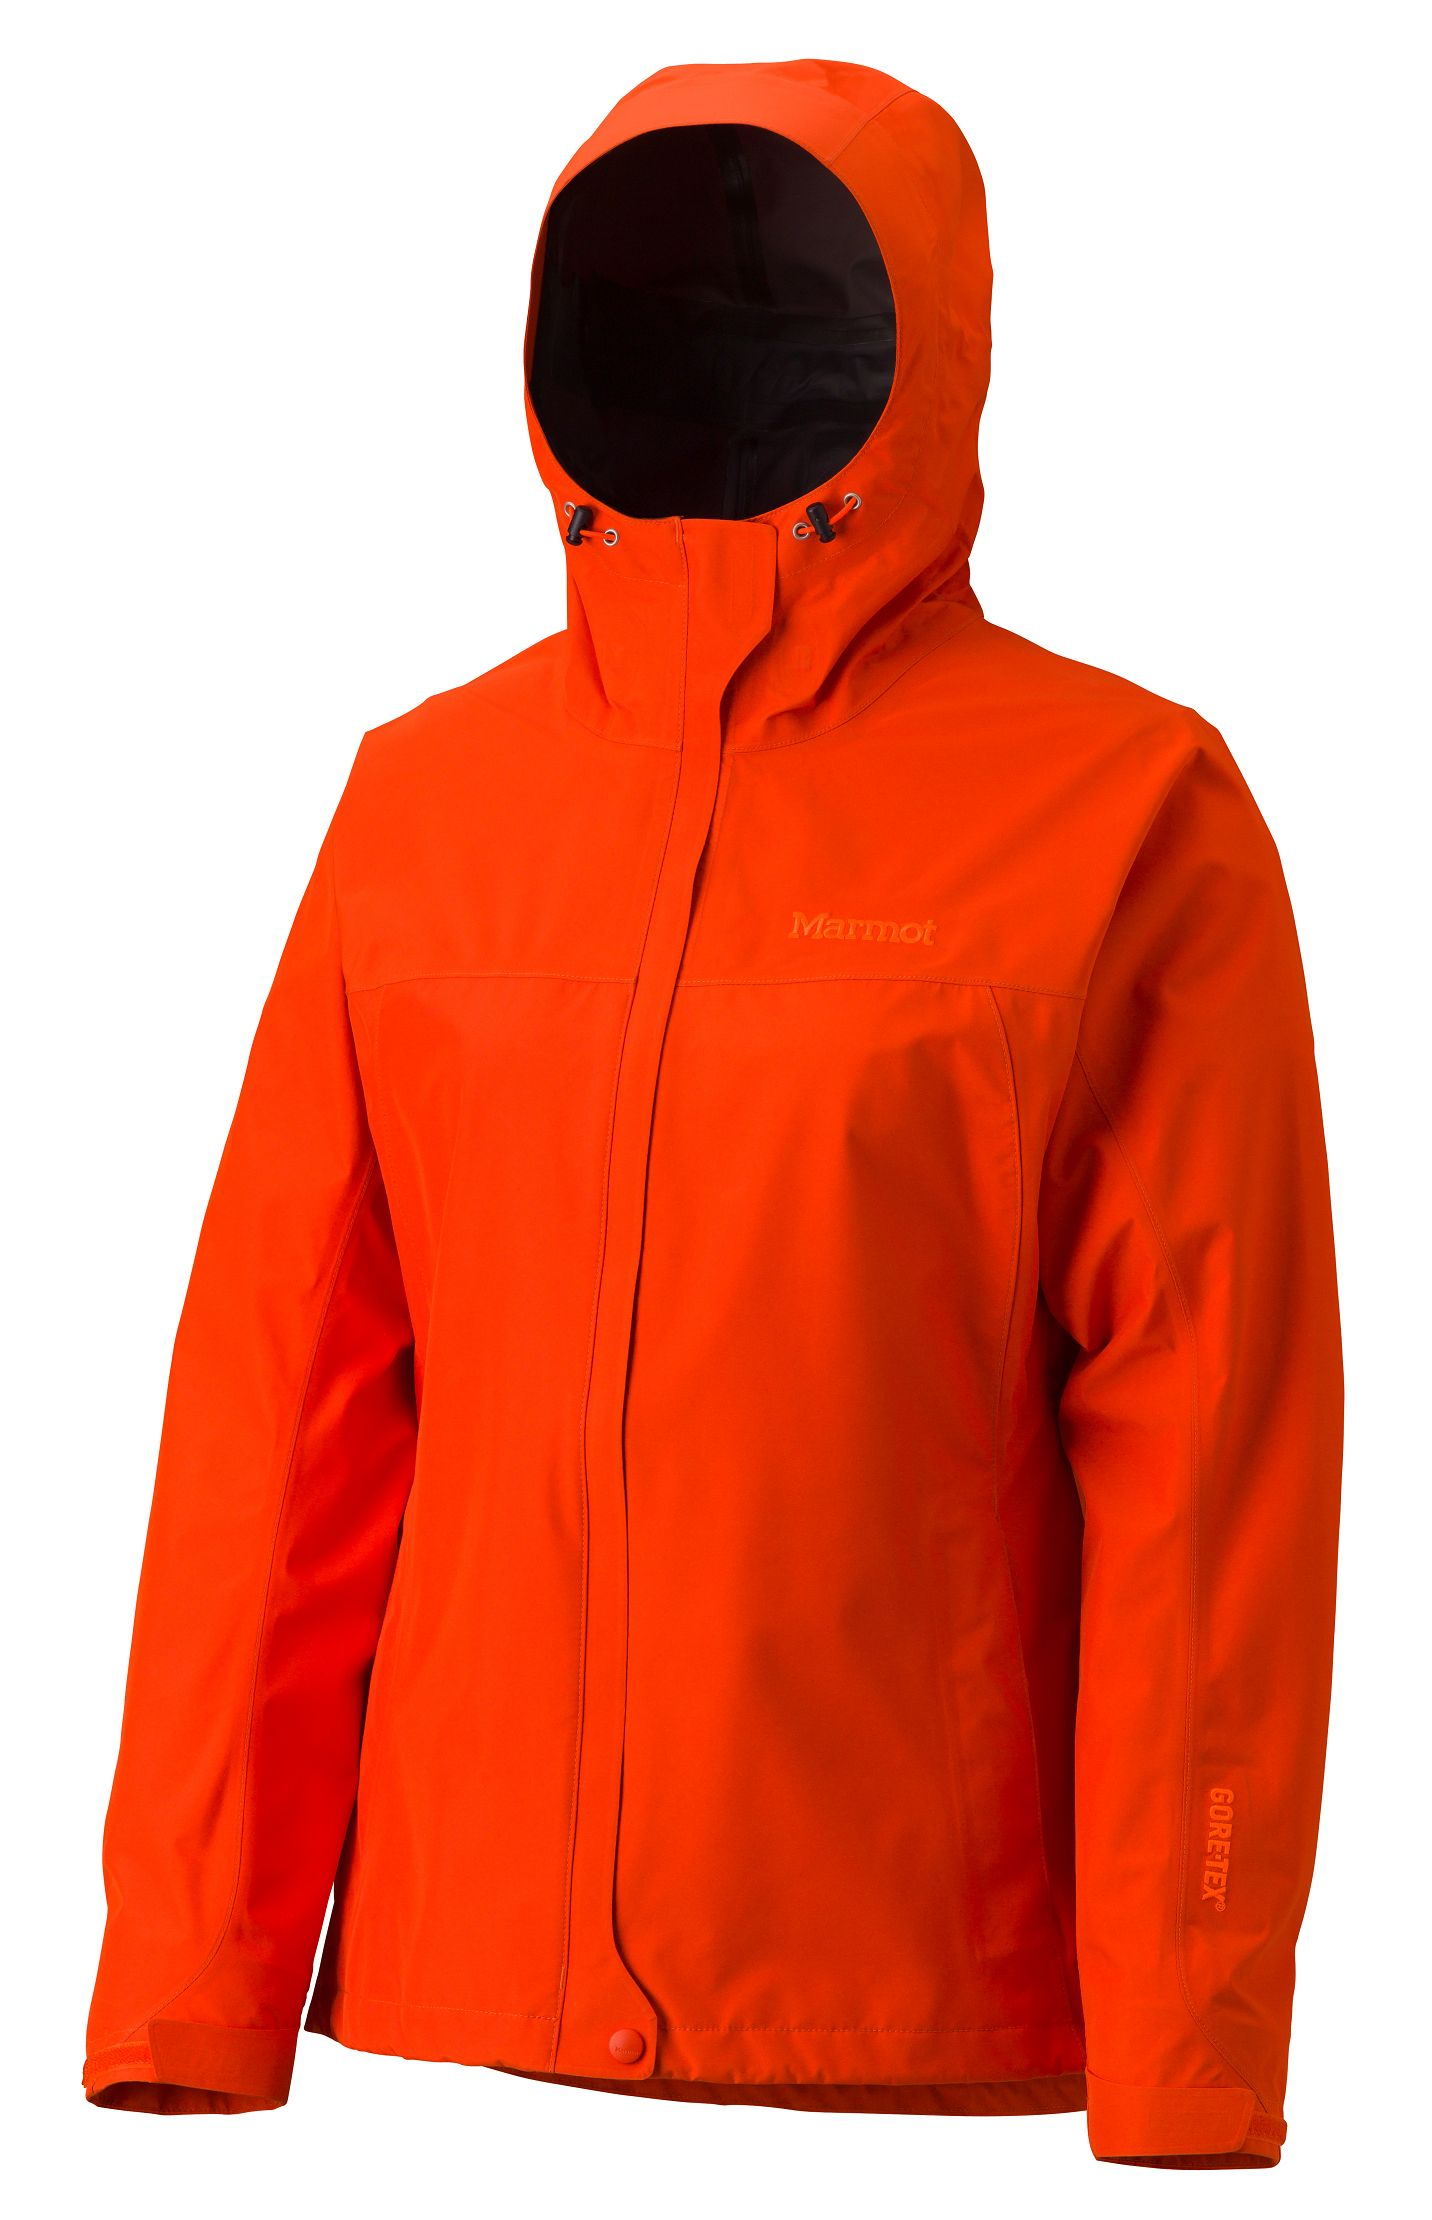 Marmot Wm's Minimalist Jacket Coral Sunset-30